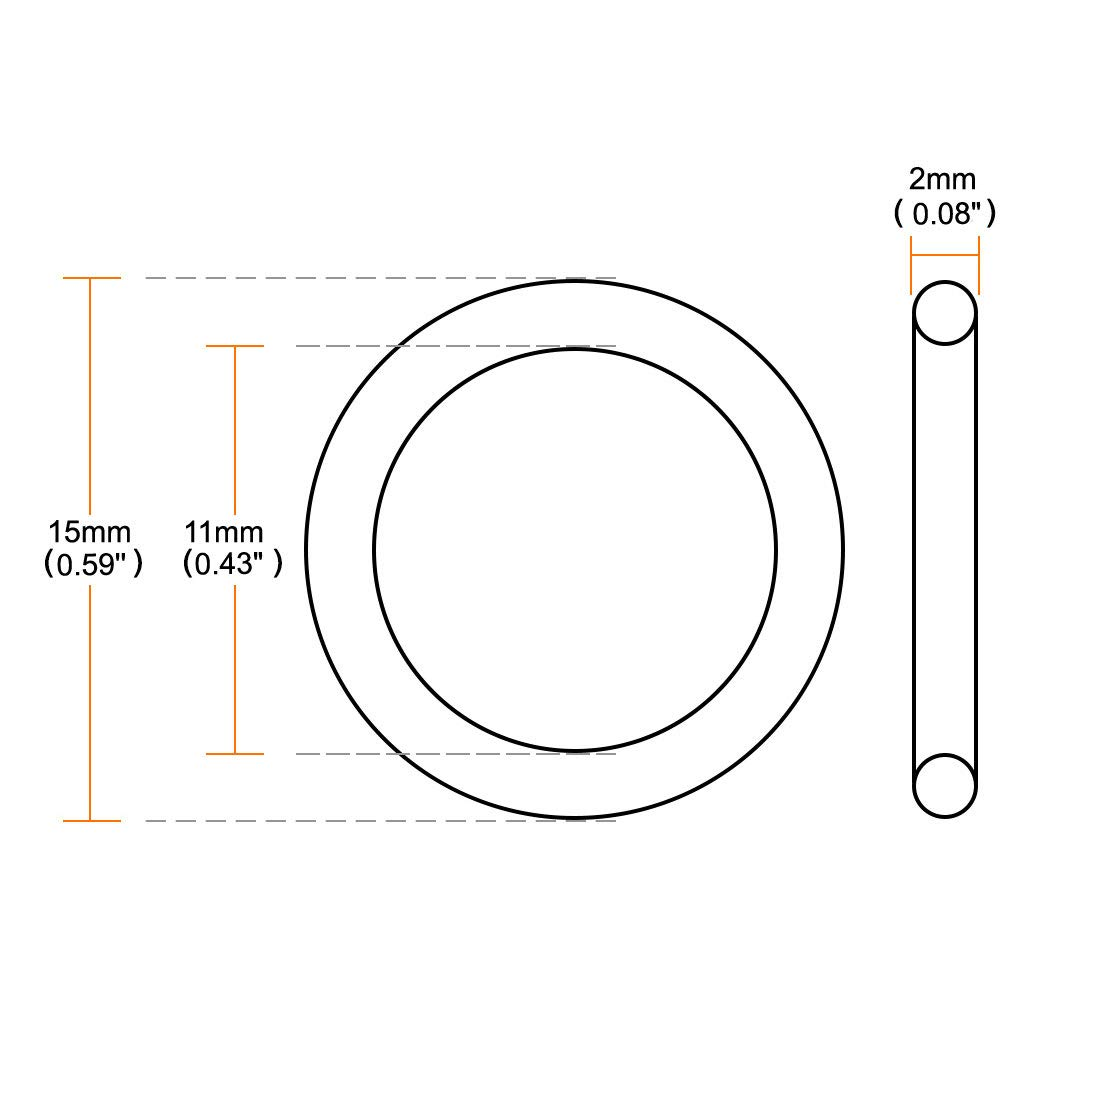 uxcell Silicone O-Rings 15mm OD 11mm ID 2mm Width VMQ Seal Gasket for Compressor Valves Pipe Repair Pack of 30 White